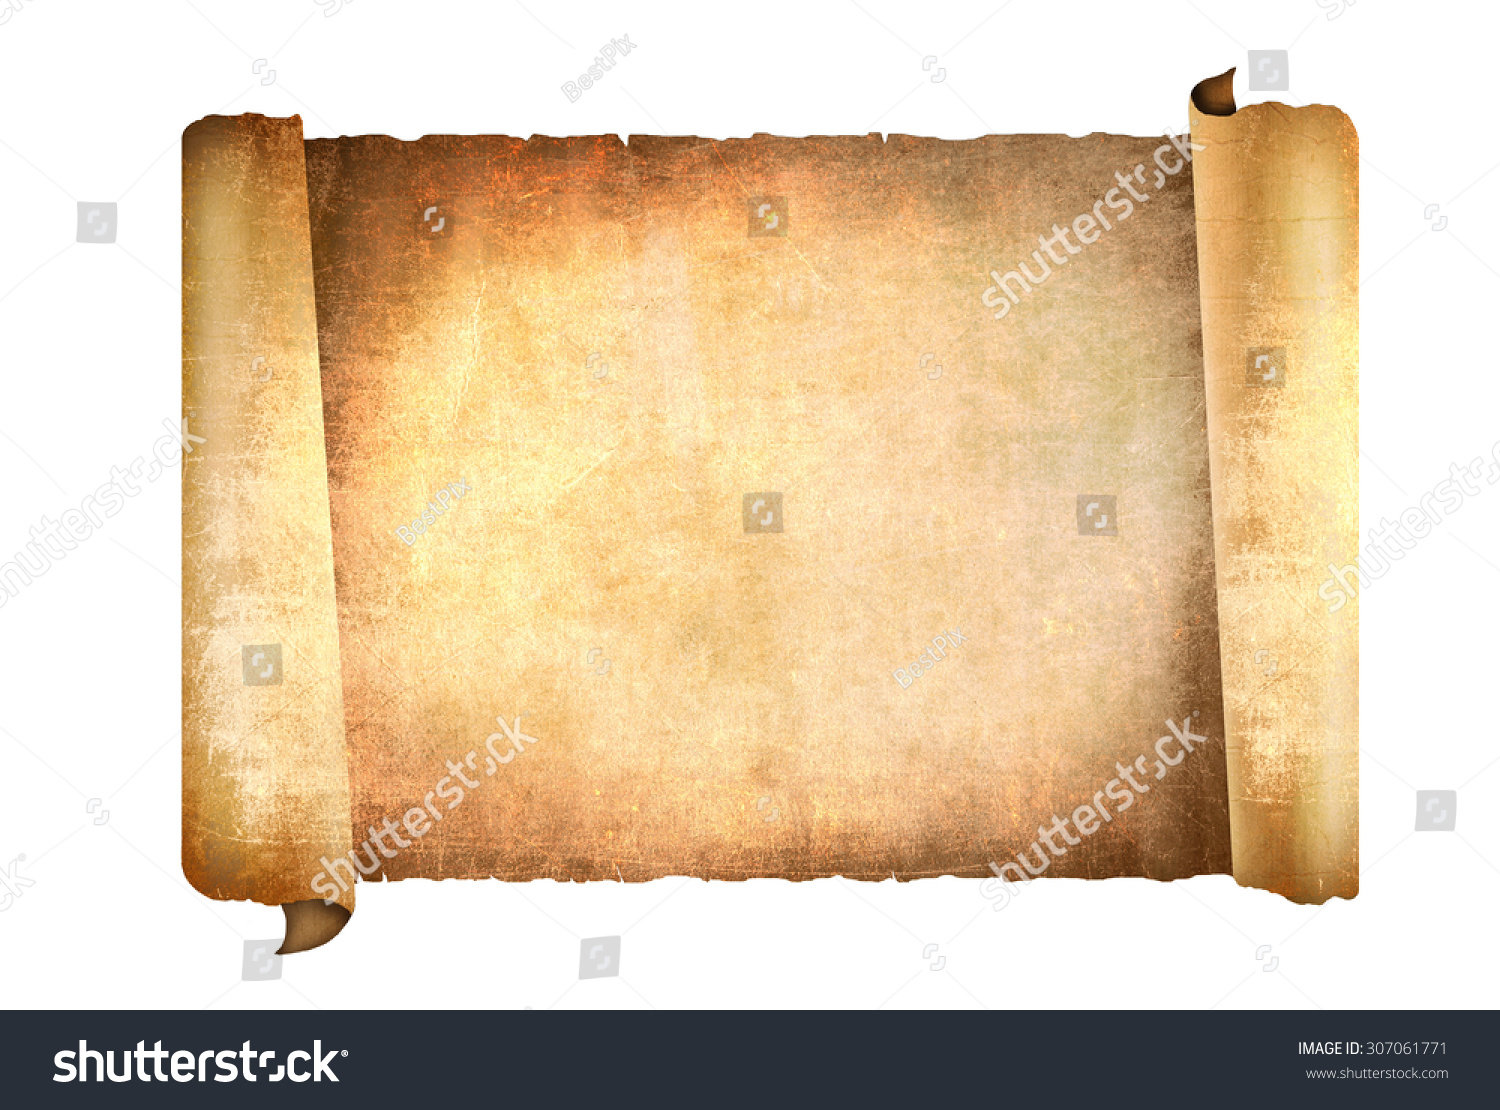 antique scroll backgrounds - photo #18